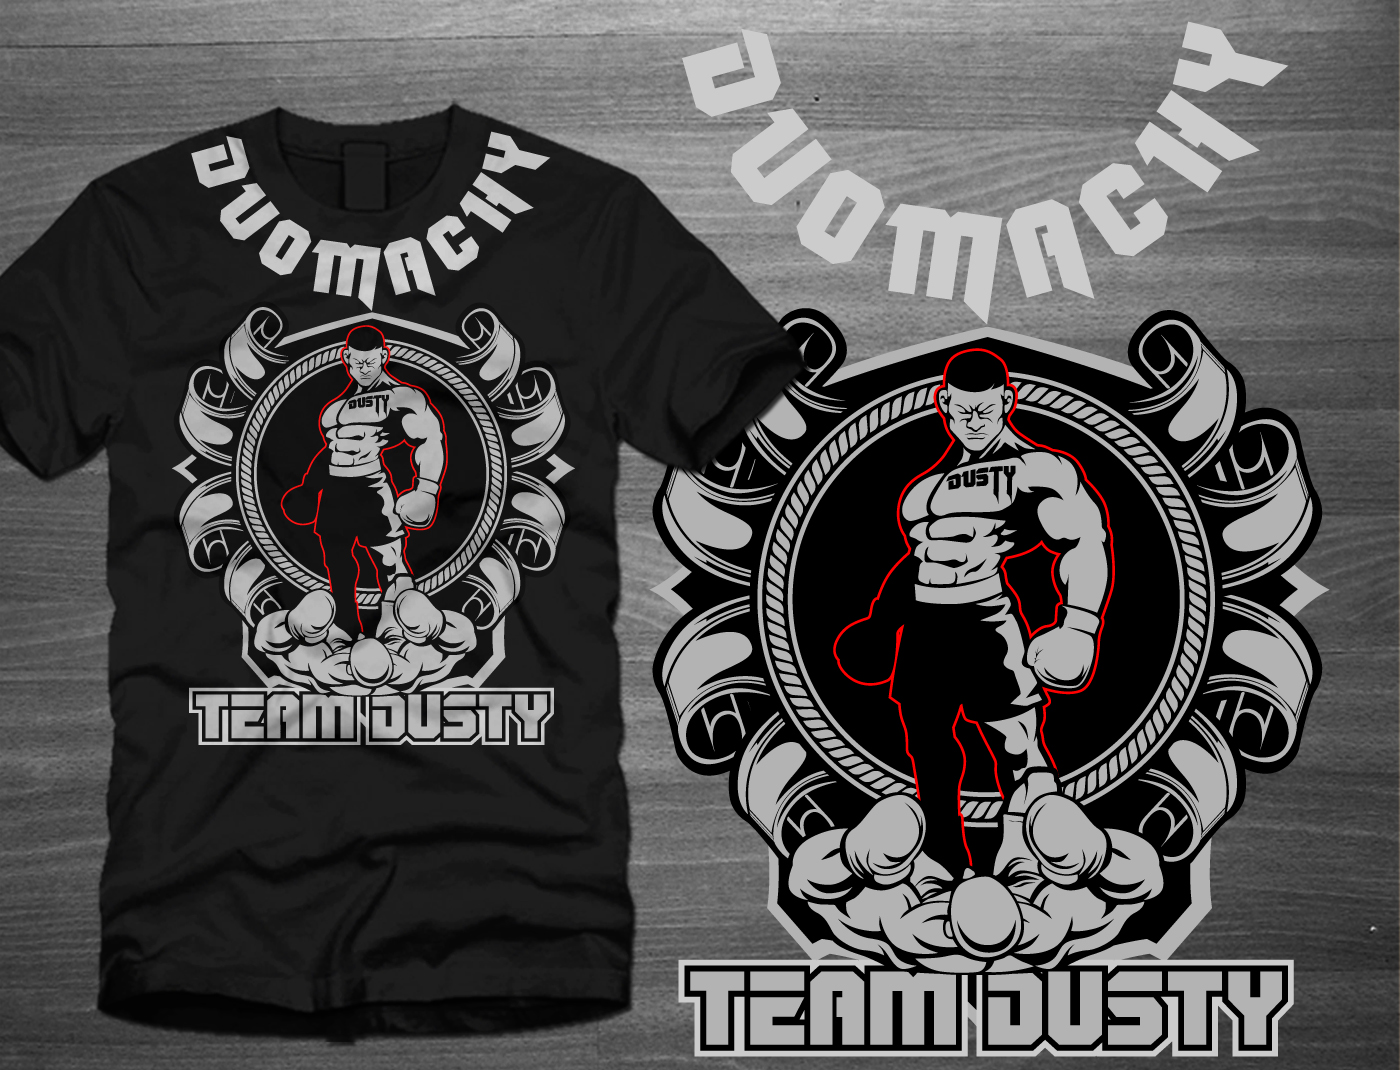 f92da1ce T-shirt Design by One Day Graphics for this project | Design #2749141